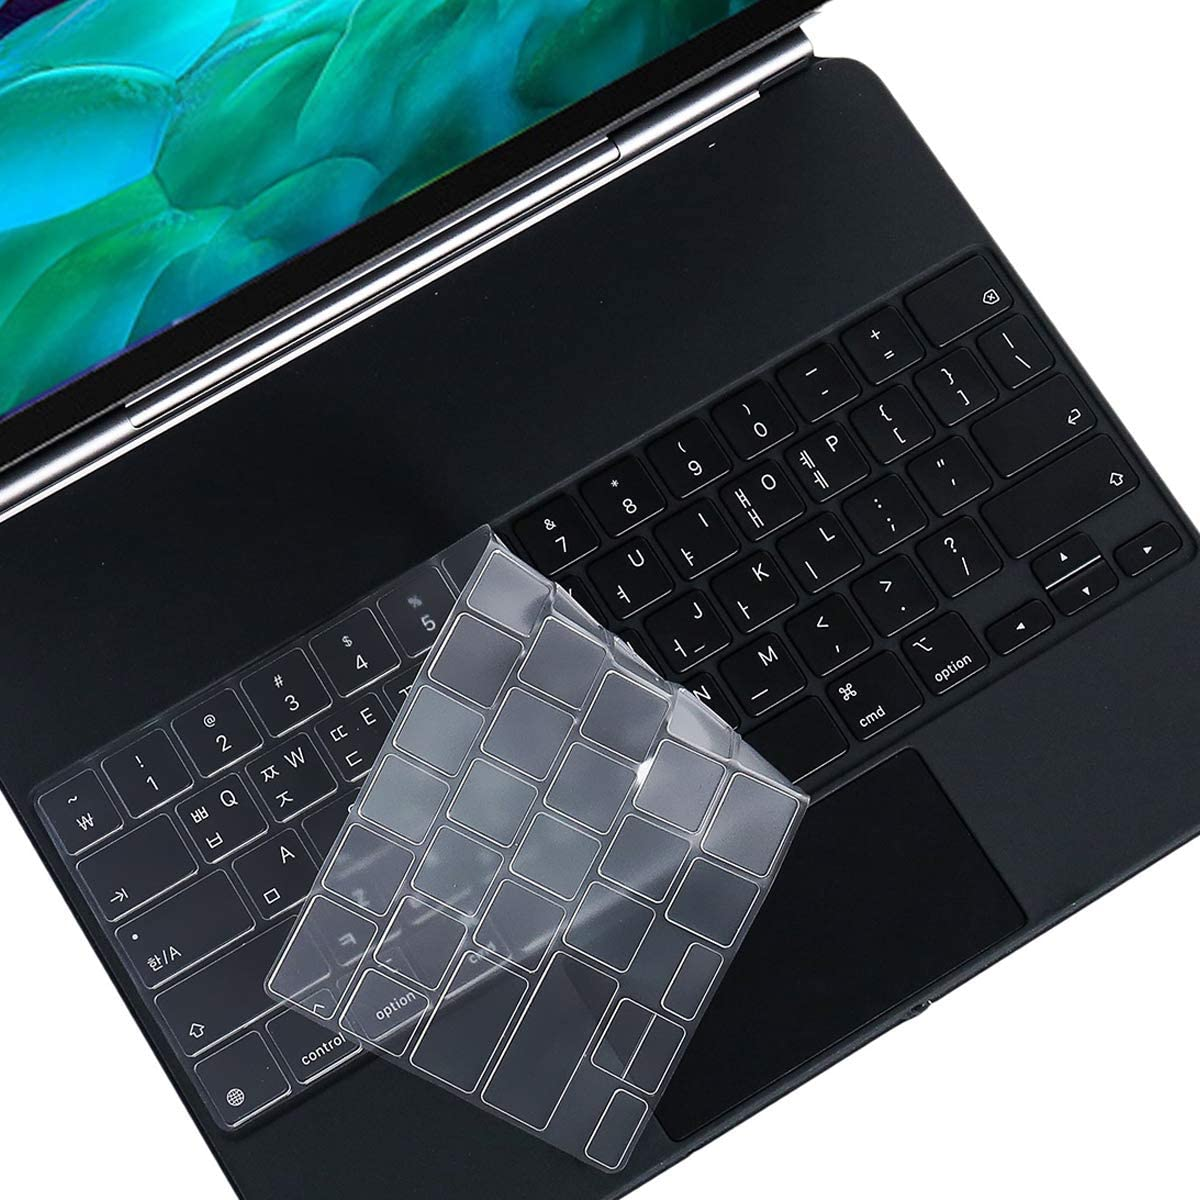 Black Lapogy Magic Keyboard Covre Skin Only Compatible for Ipad Pro 12.9 inch(4th Generation),TPU Protective Skin Keyboard Accessories Cover